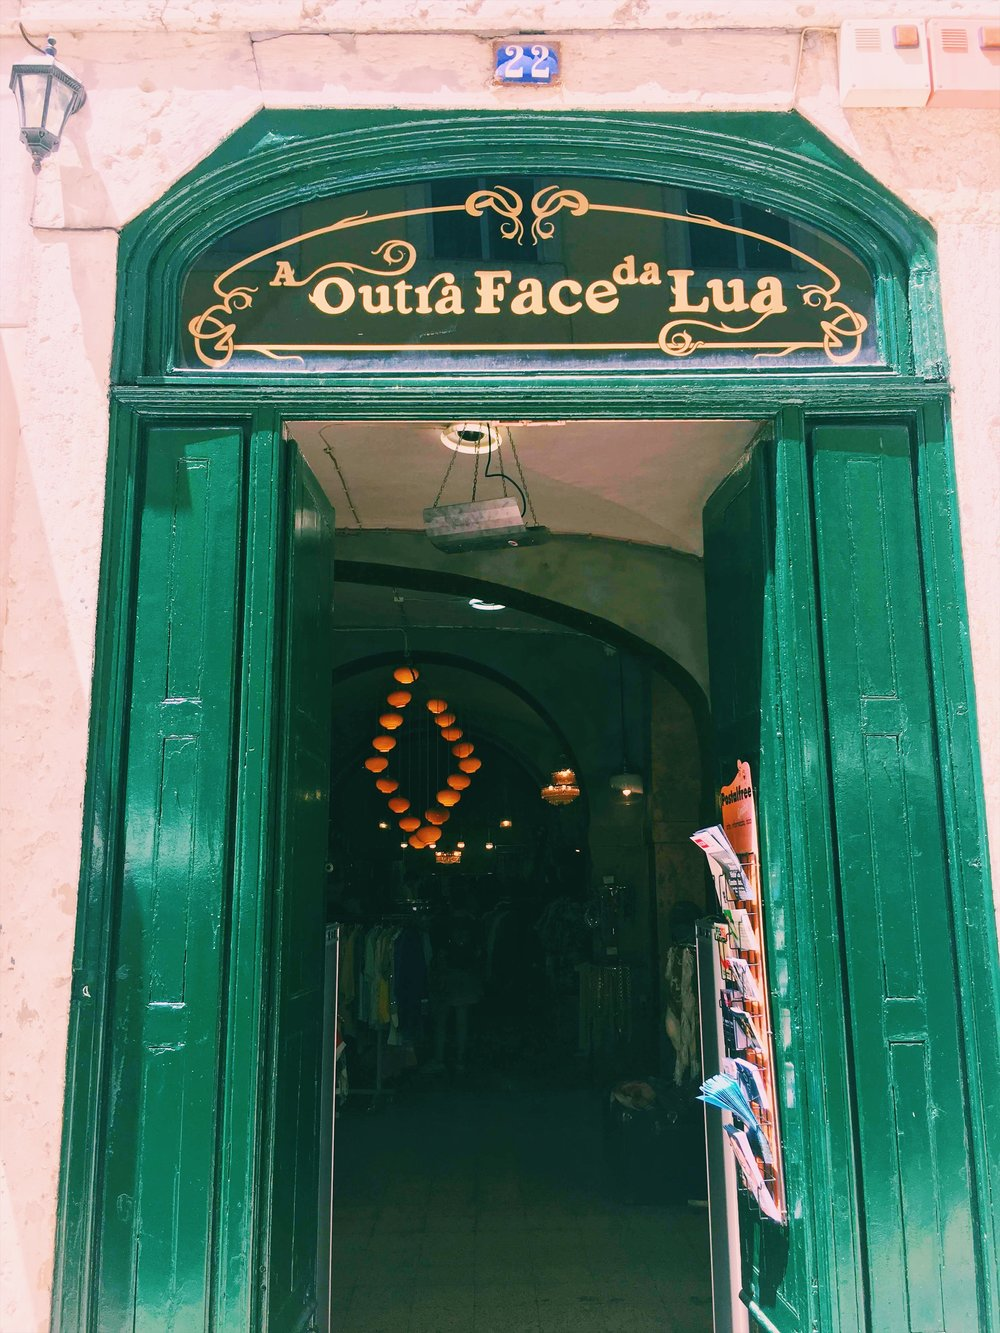 A Outra Face Da Lua / Lisbon eats + drinks travel guide | Soi 55 Travels